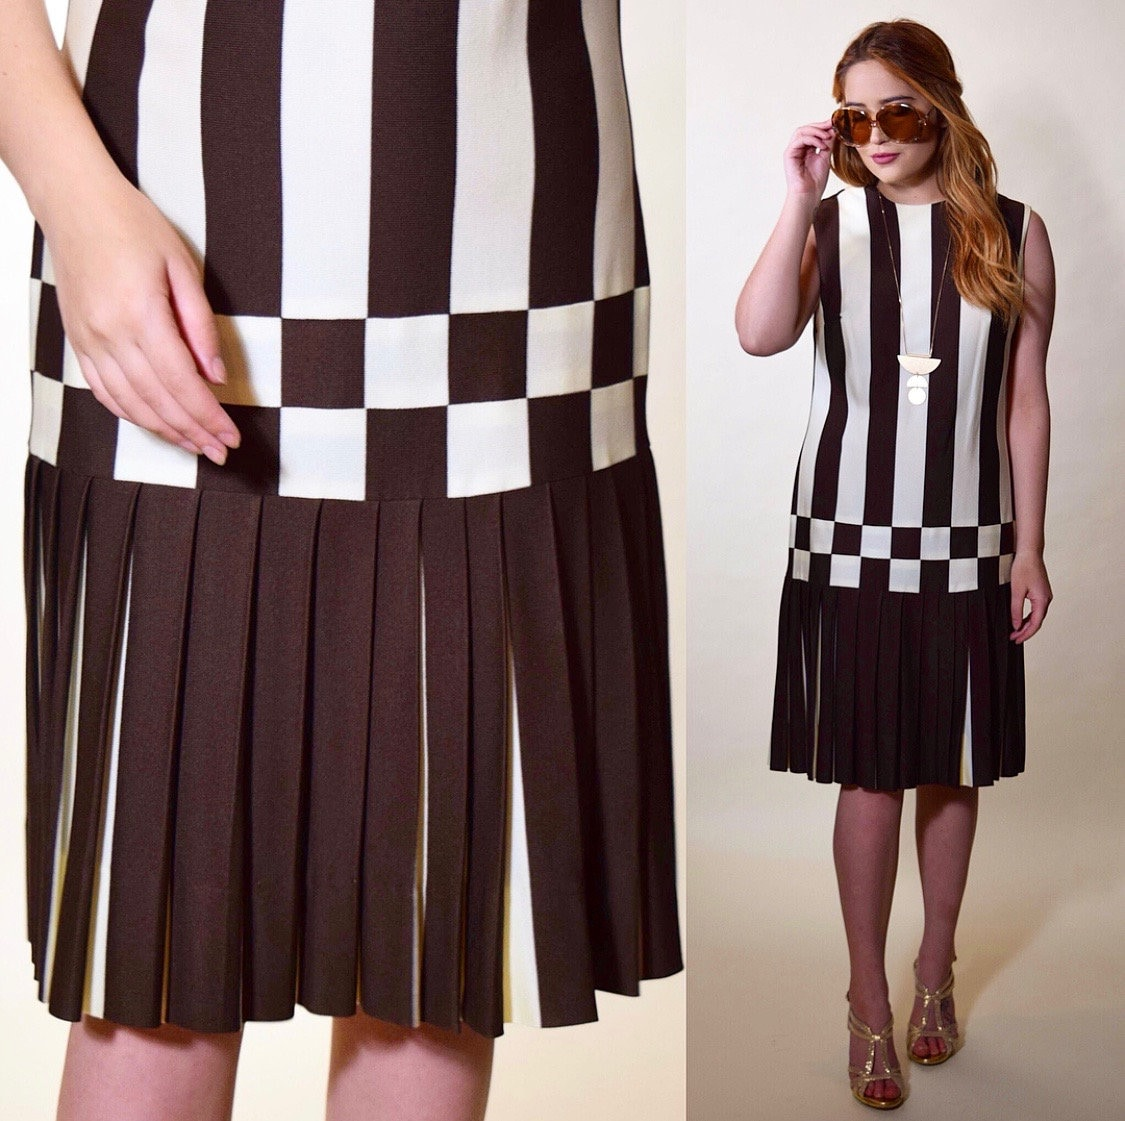 e90be7223f 1960s vintage brown + white flapper 20s style drop waist sleeveless dress  with pleated skirt women's size medium